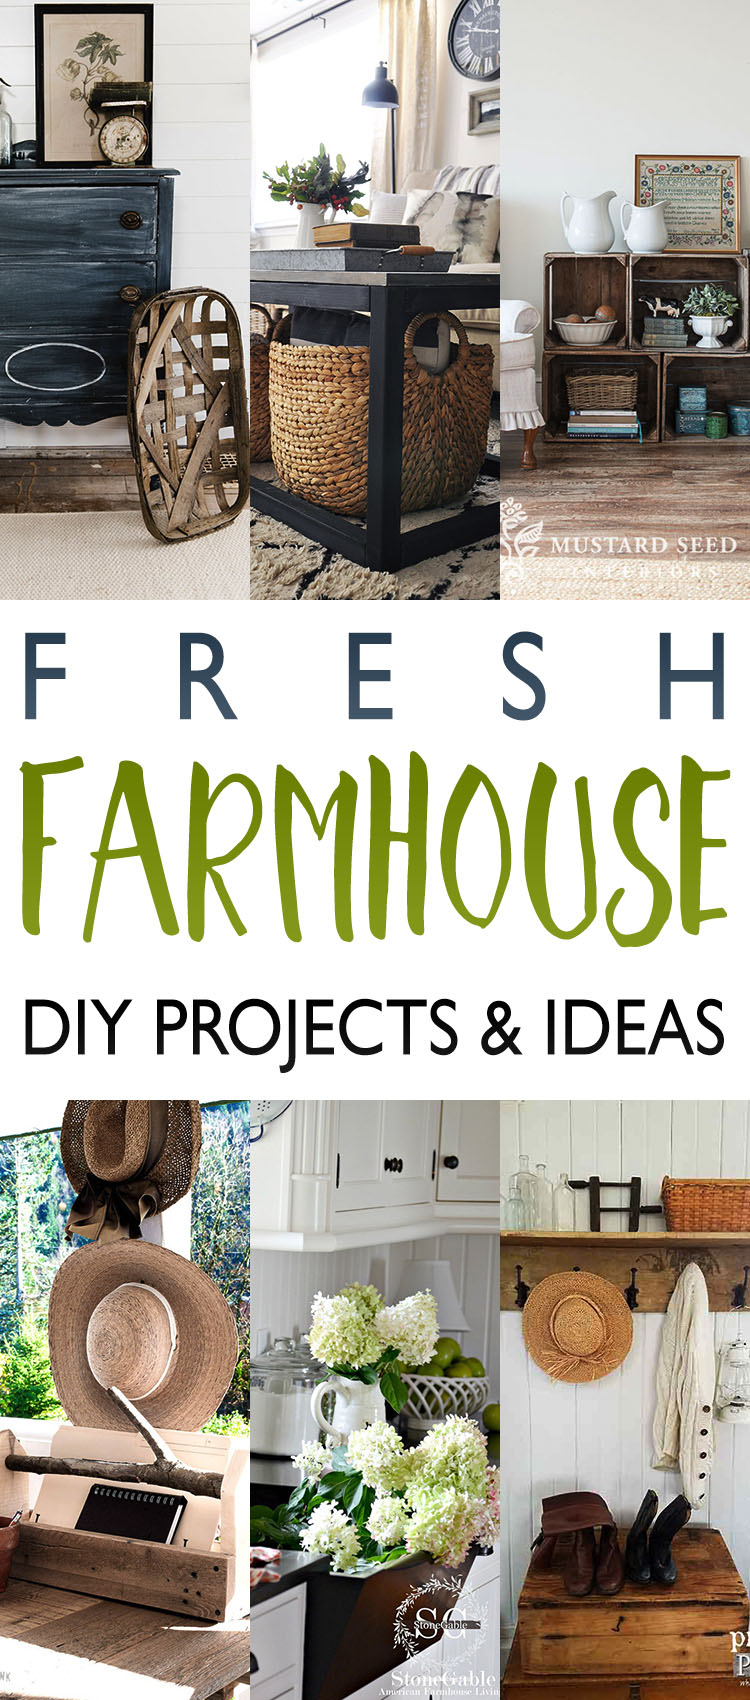 http://thecottagemarket.com/wp-content/uploads/2016/11/FreshFarmhouse-TOWER-0001.jpg